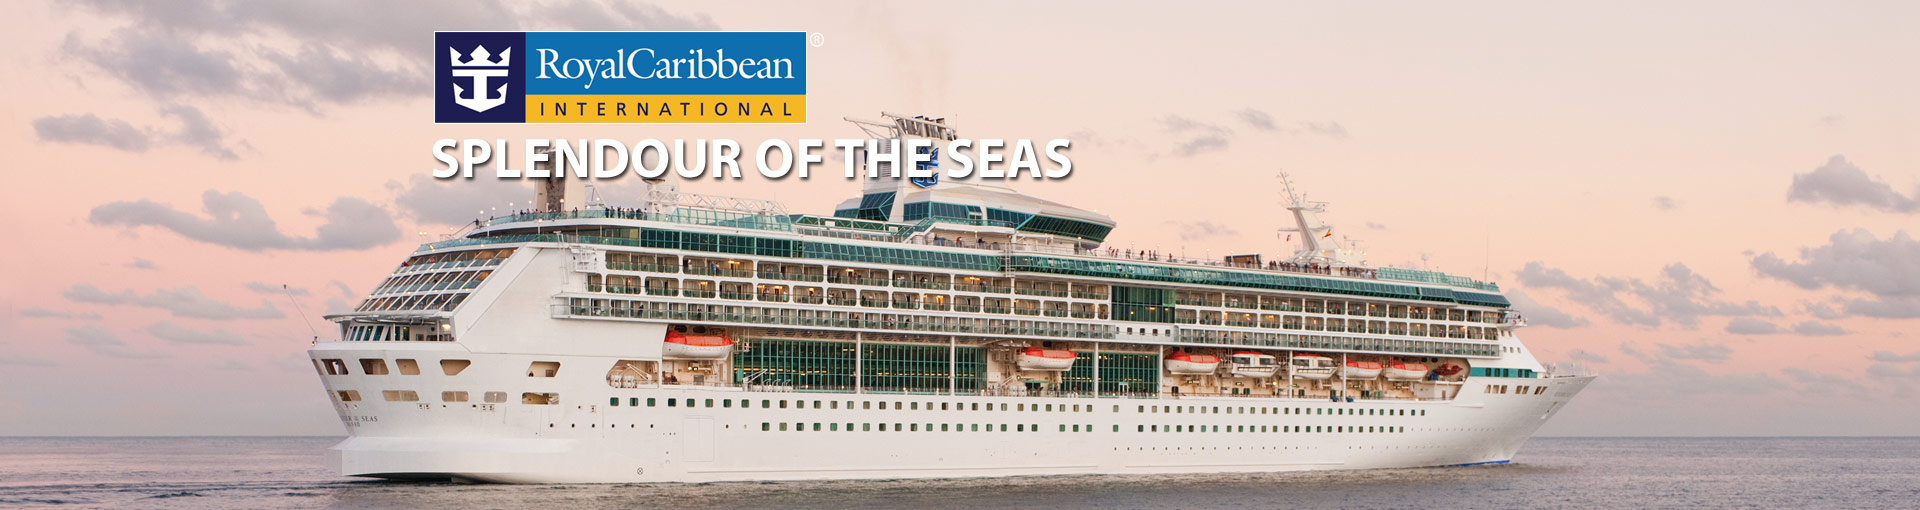 Royal caribbeans splendour of the seas cruise ship 2017 and 2018 royal caribbean splendour of the seas baanklon Images